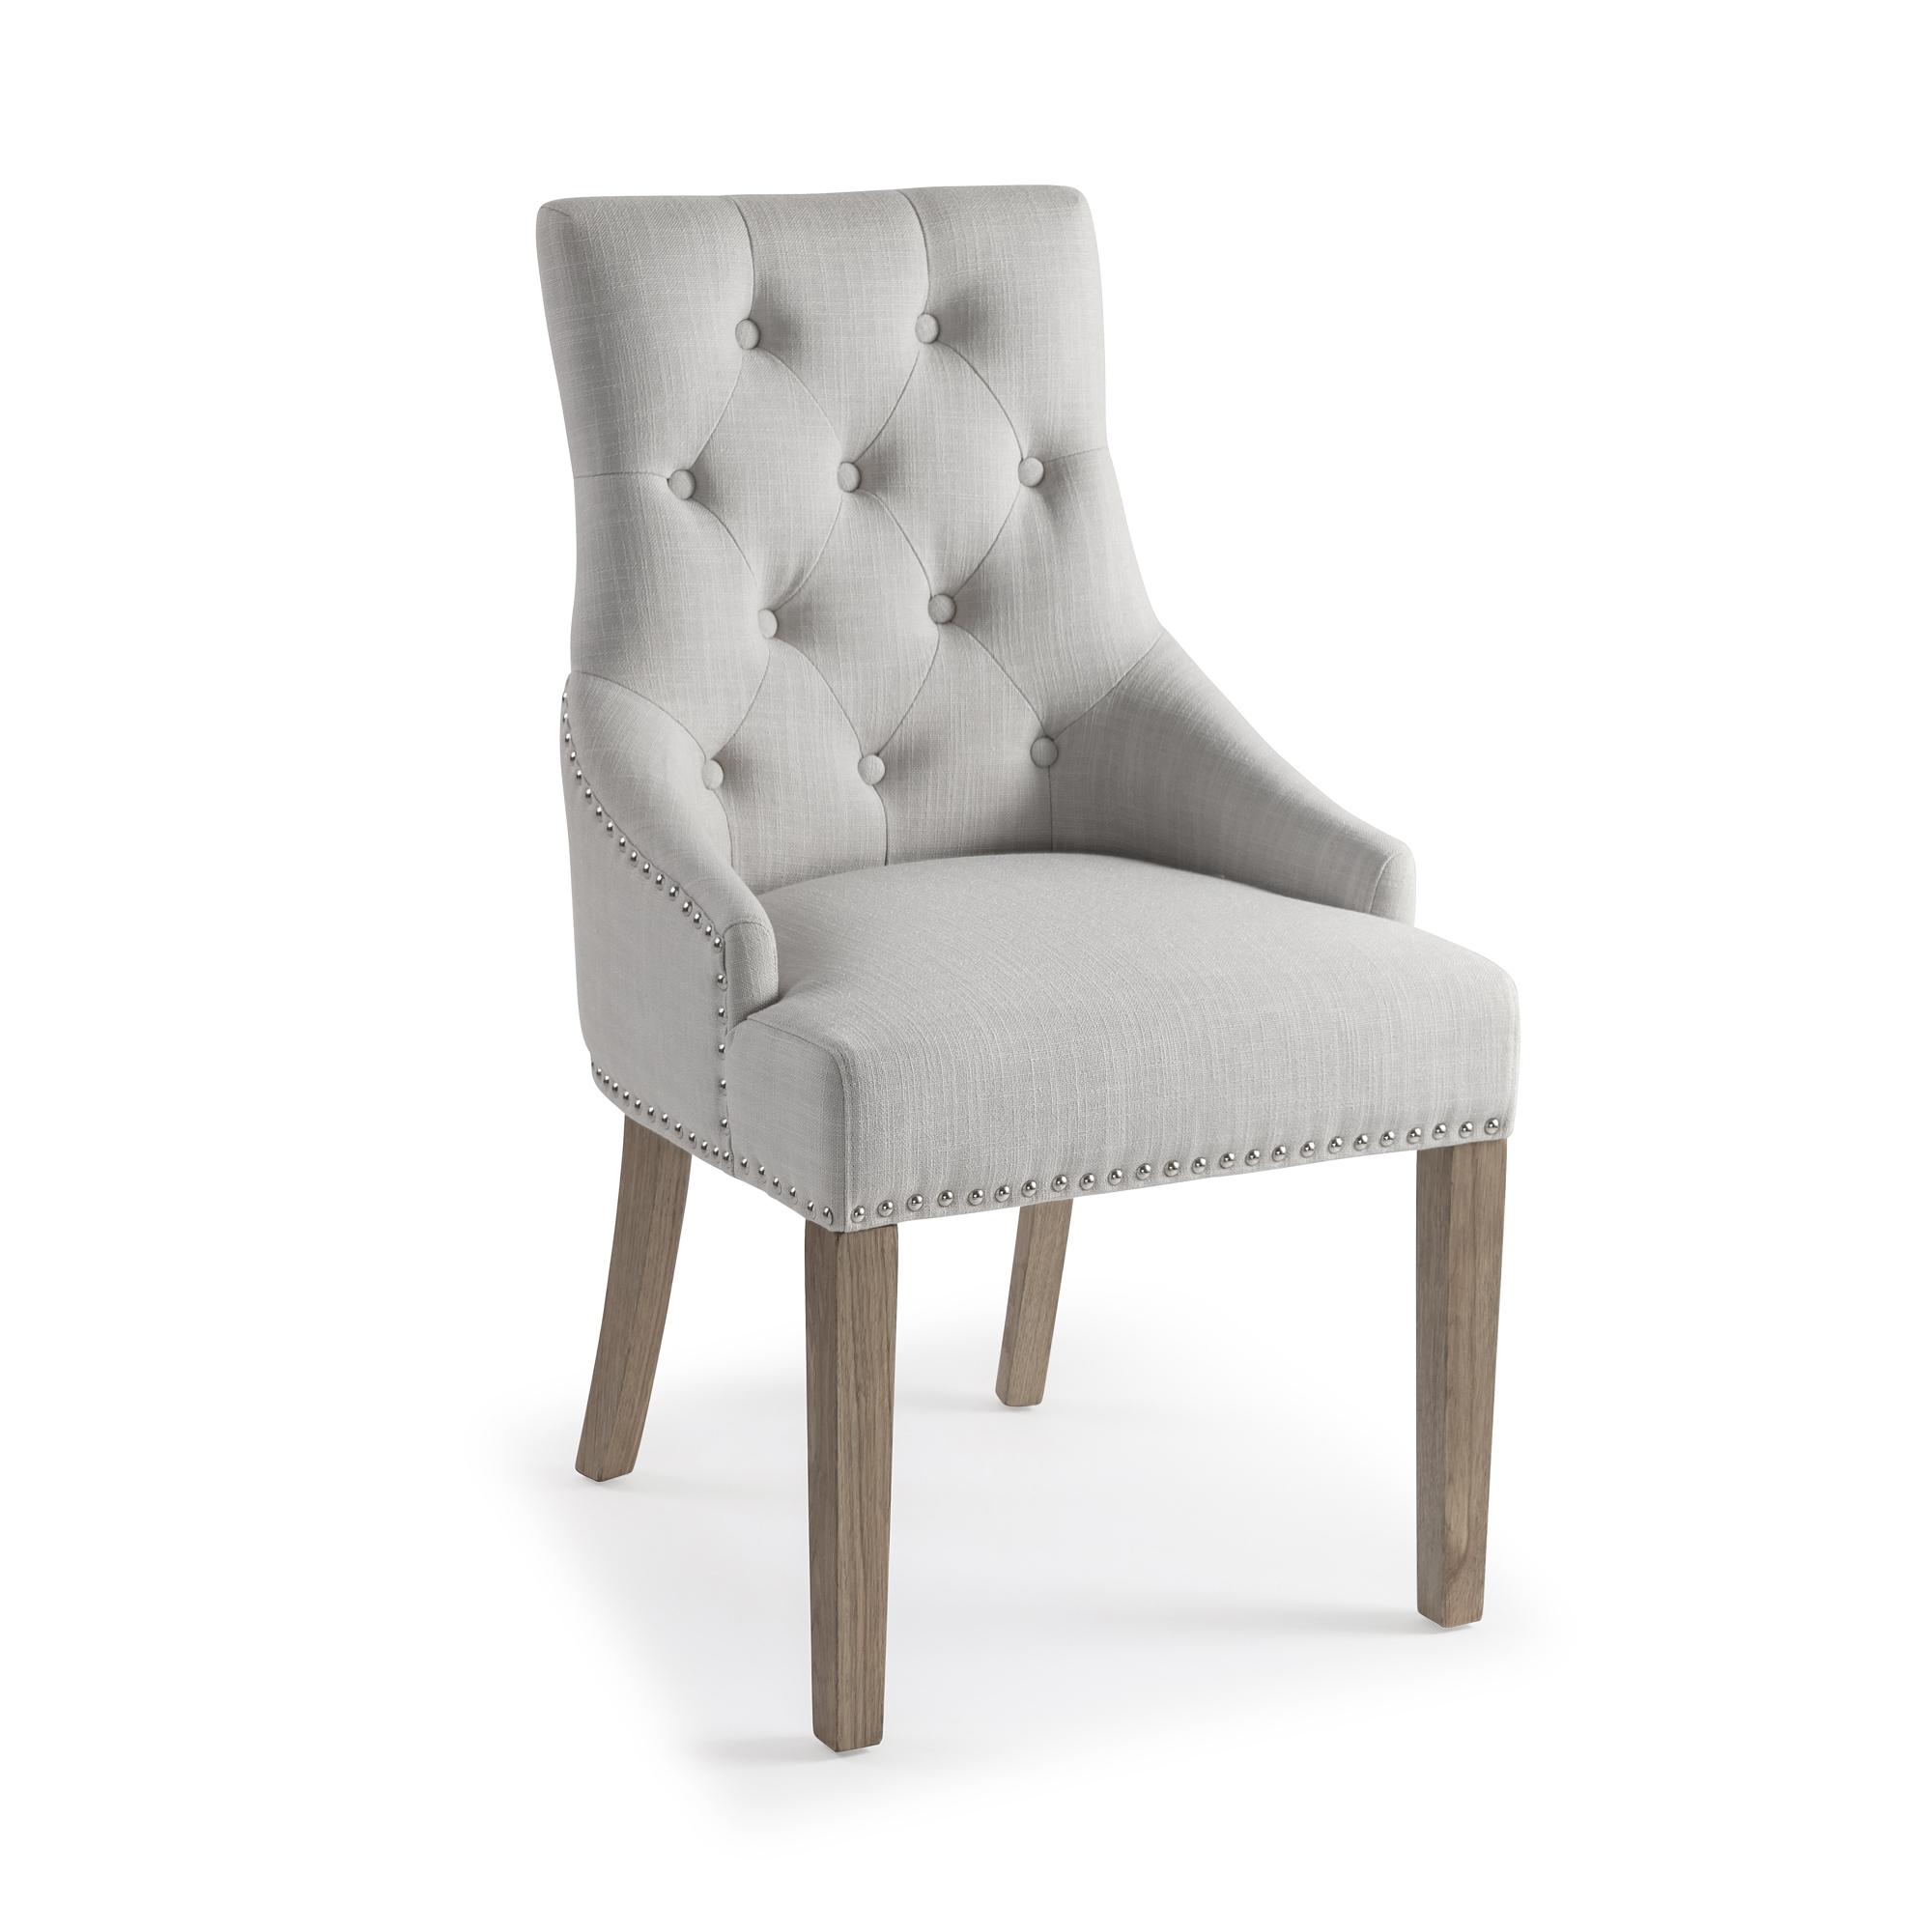 Chelsea Upholstered Scoop Dining Chair – Natural Linen with Hoop – Sets